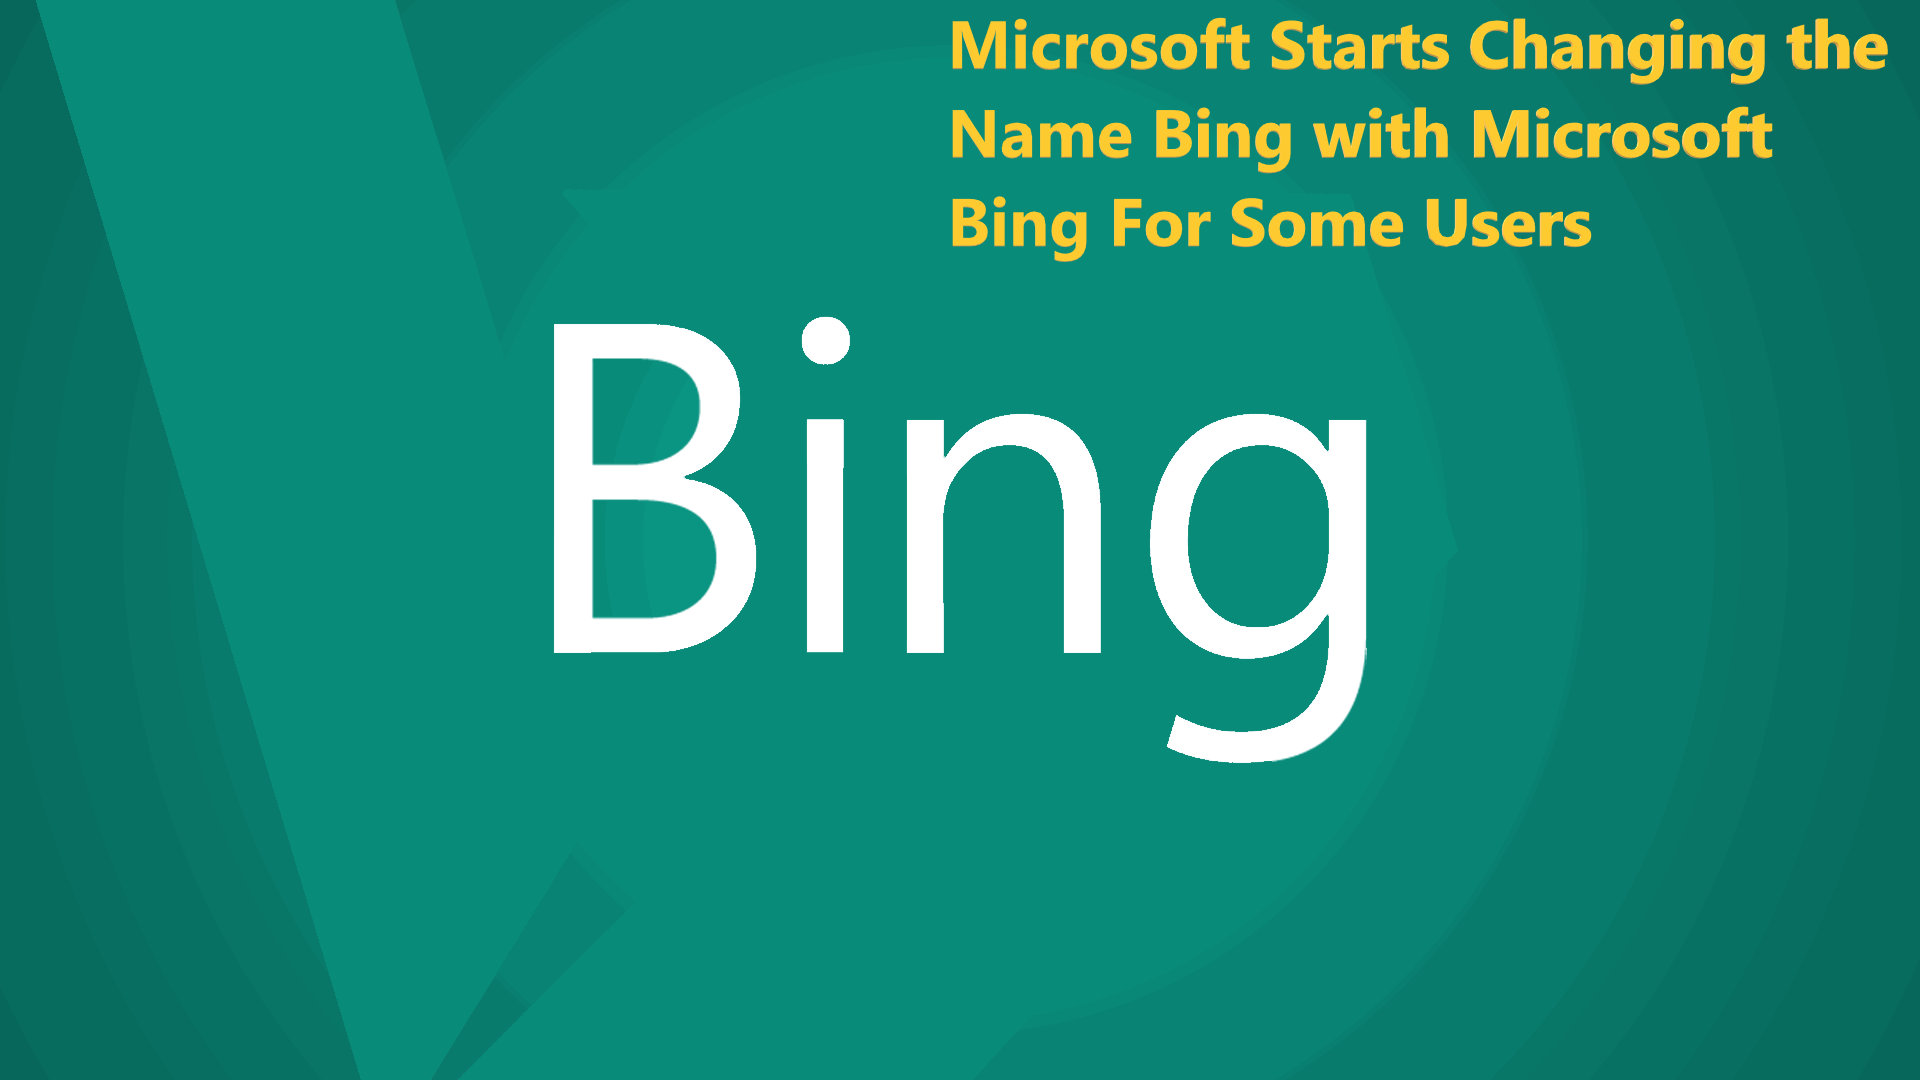 Microsoft Starts Changing the Name Bing with Microsoft Bing For Some Users